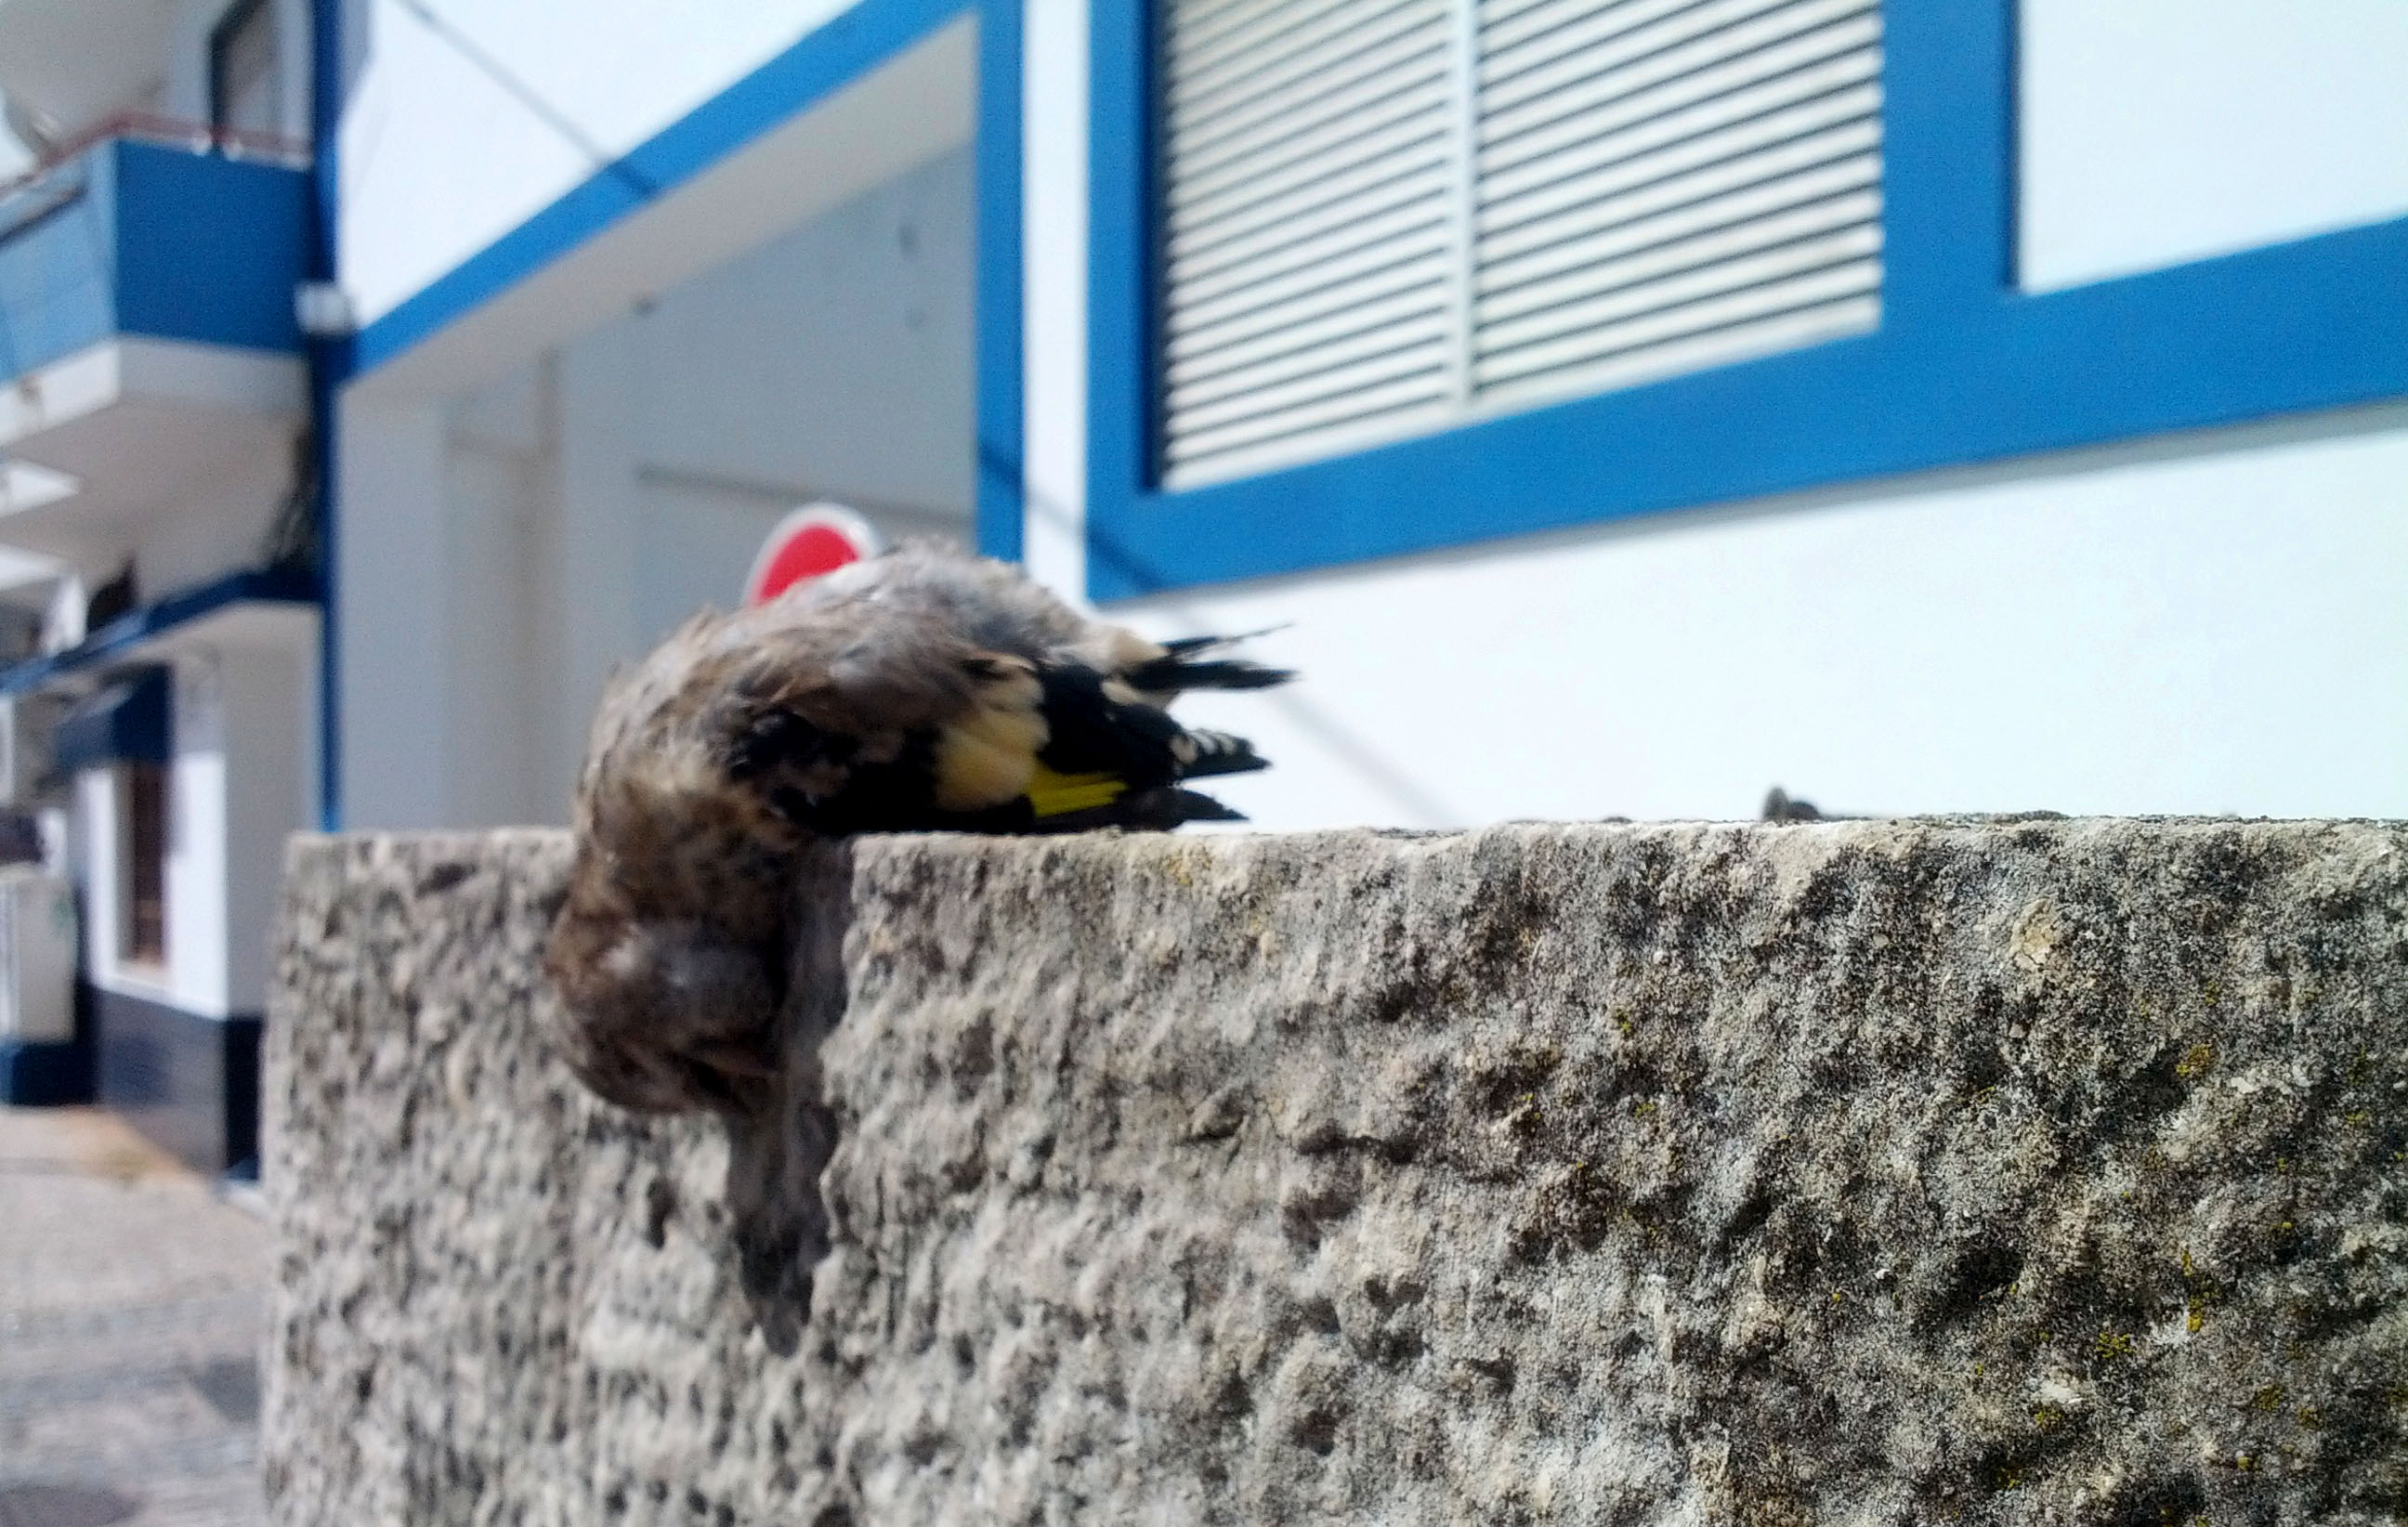 humanlike.co animals dead bird on wall